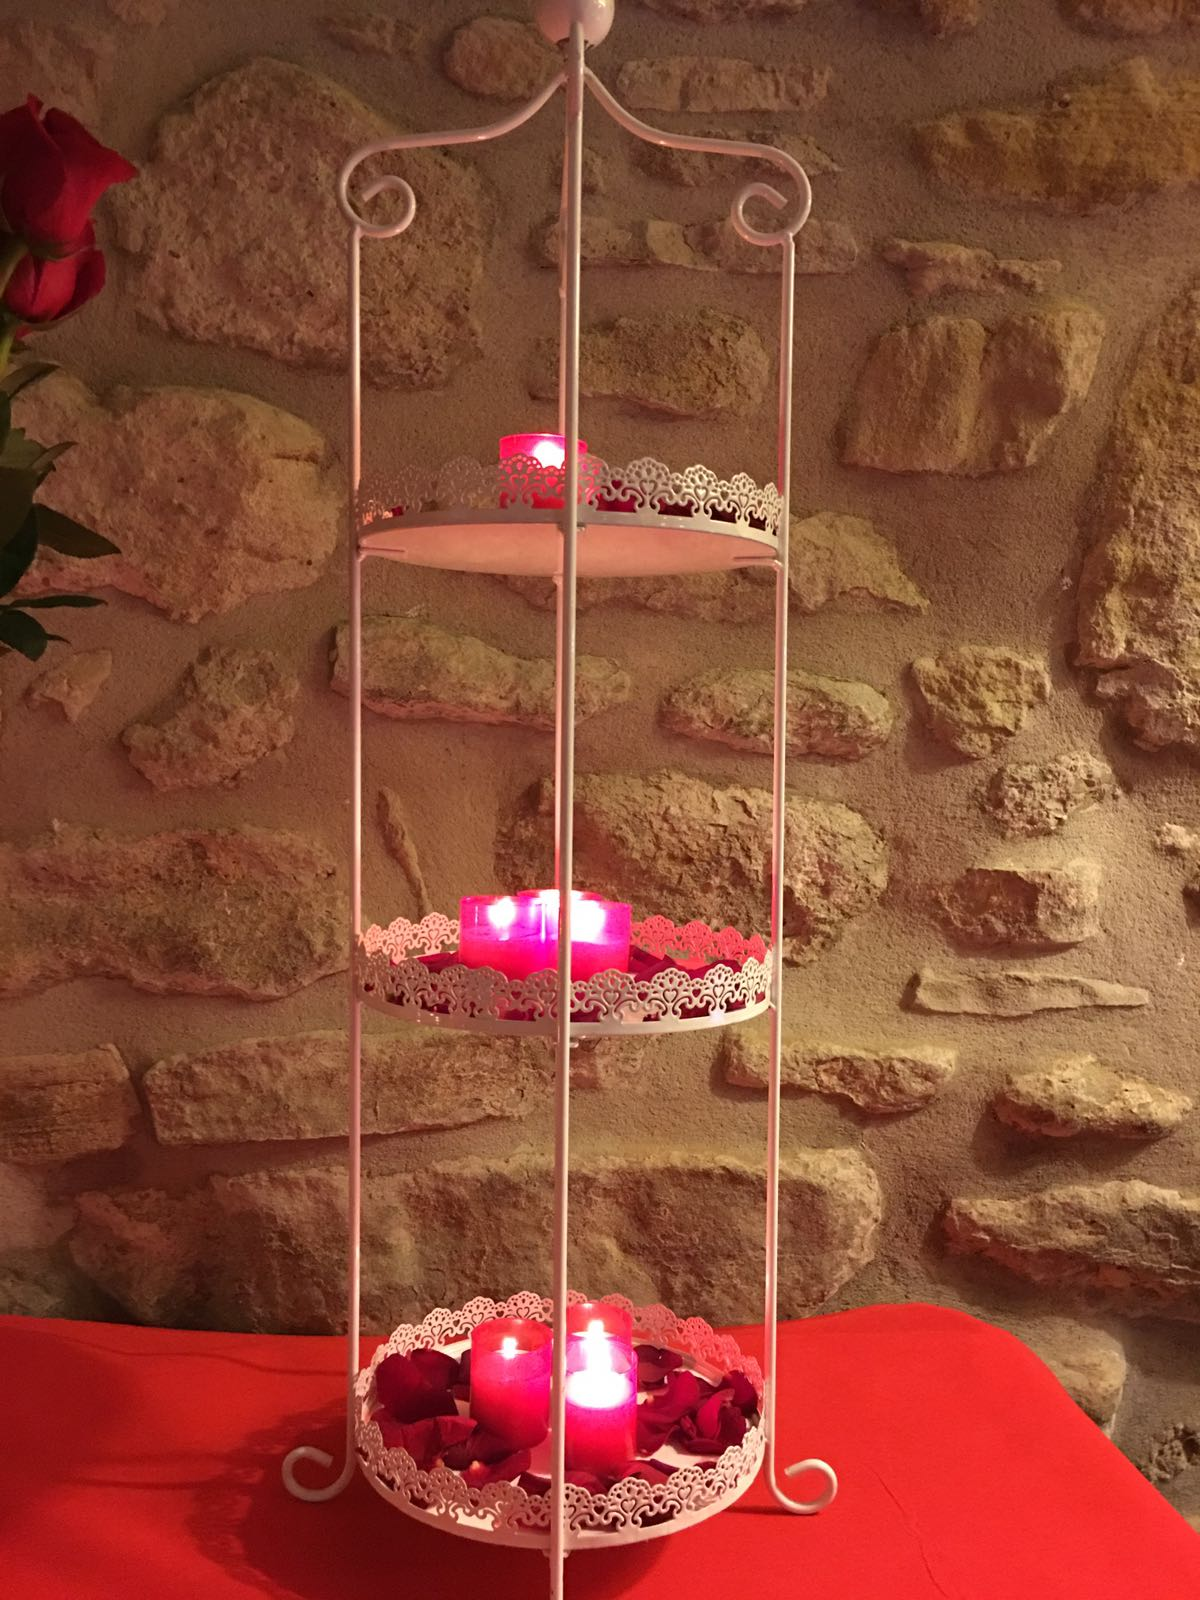 Decorations for parties red candles